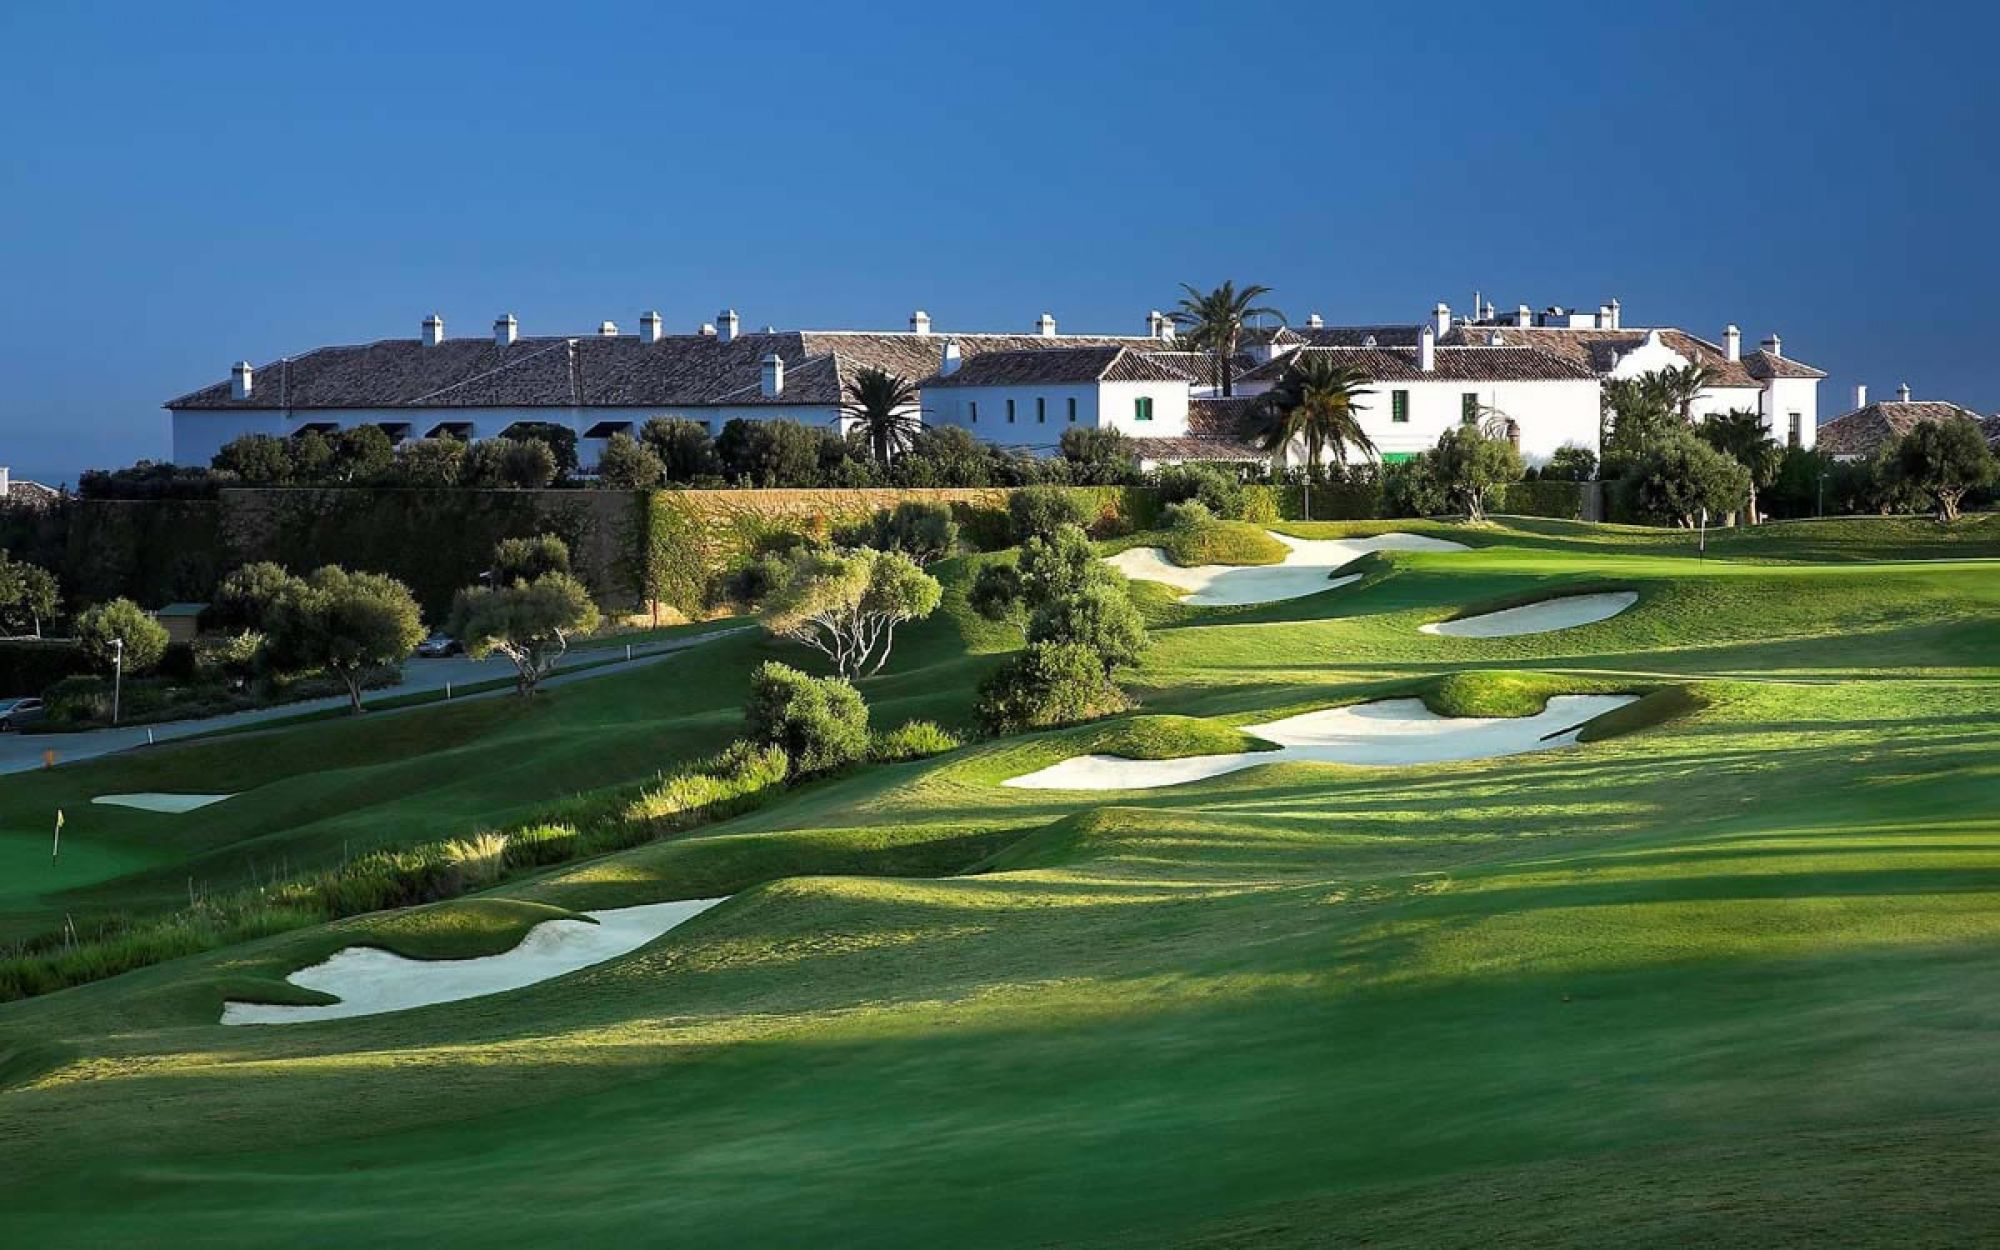 The Finca Cortesin Golf Club's picturesque golf course in pleasing Costa Del Sol.